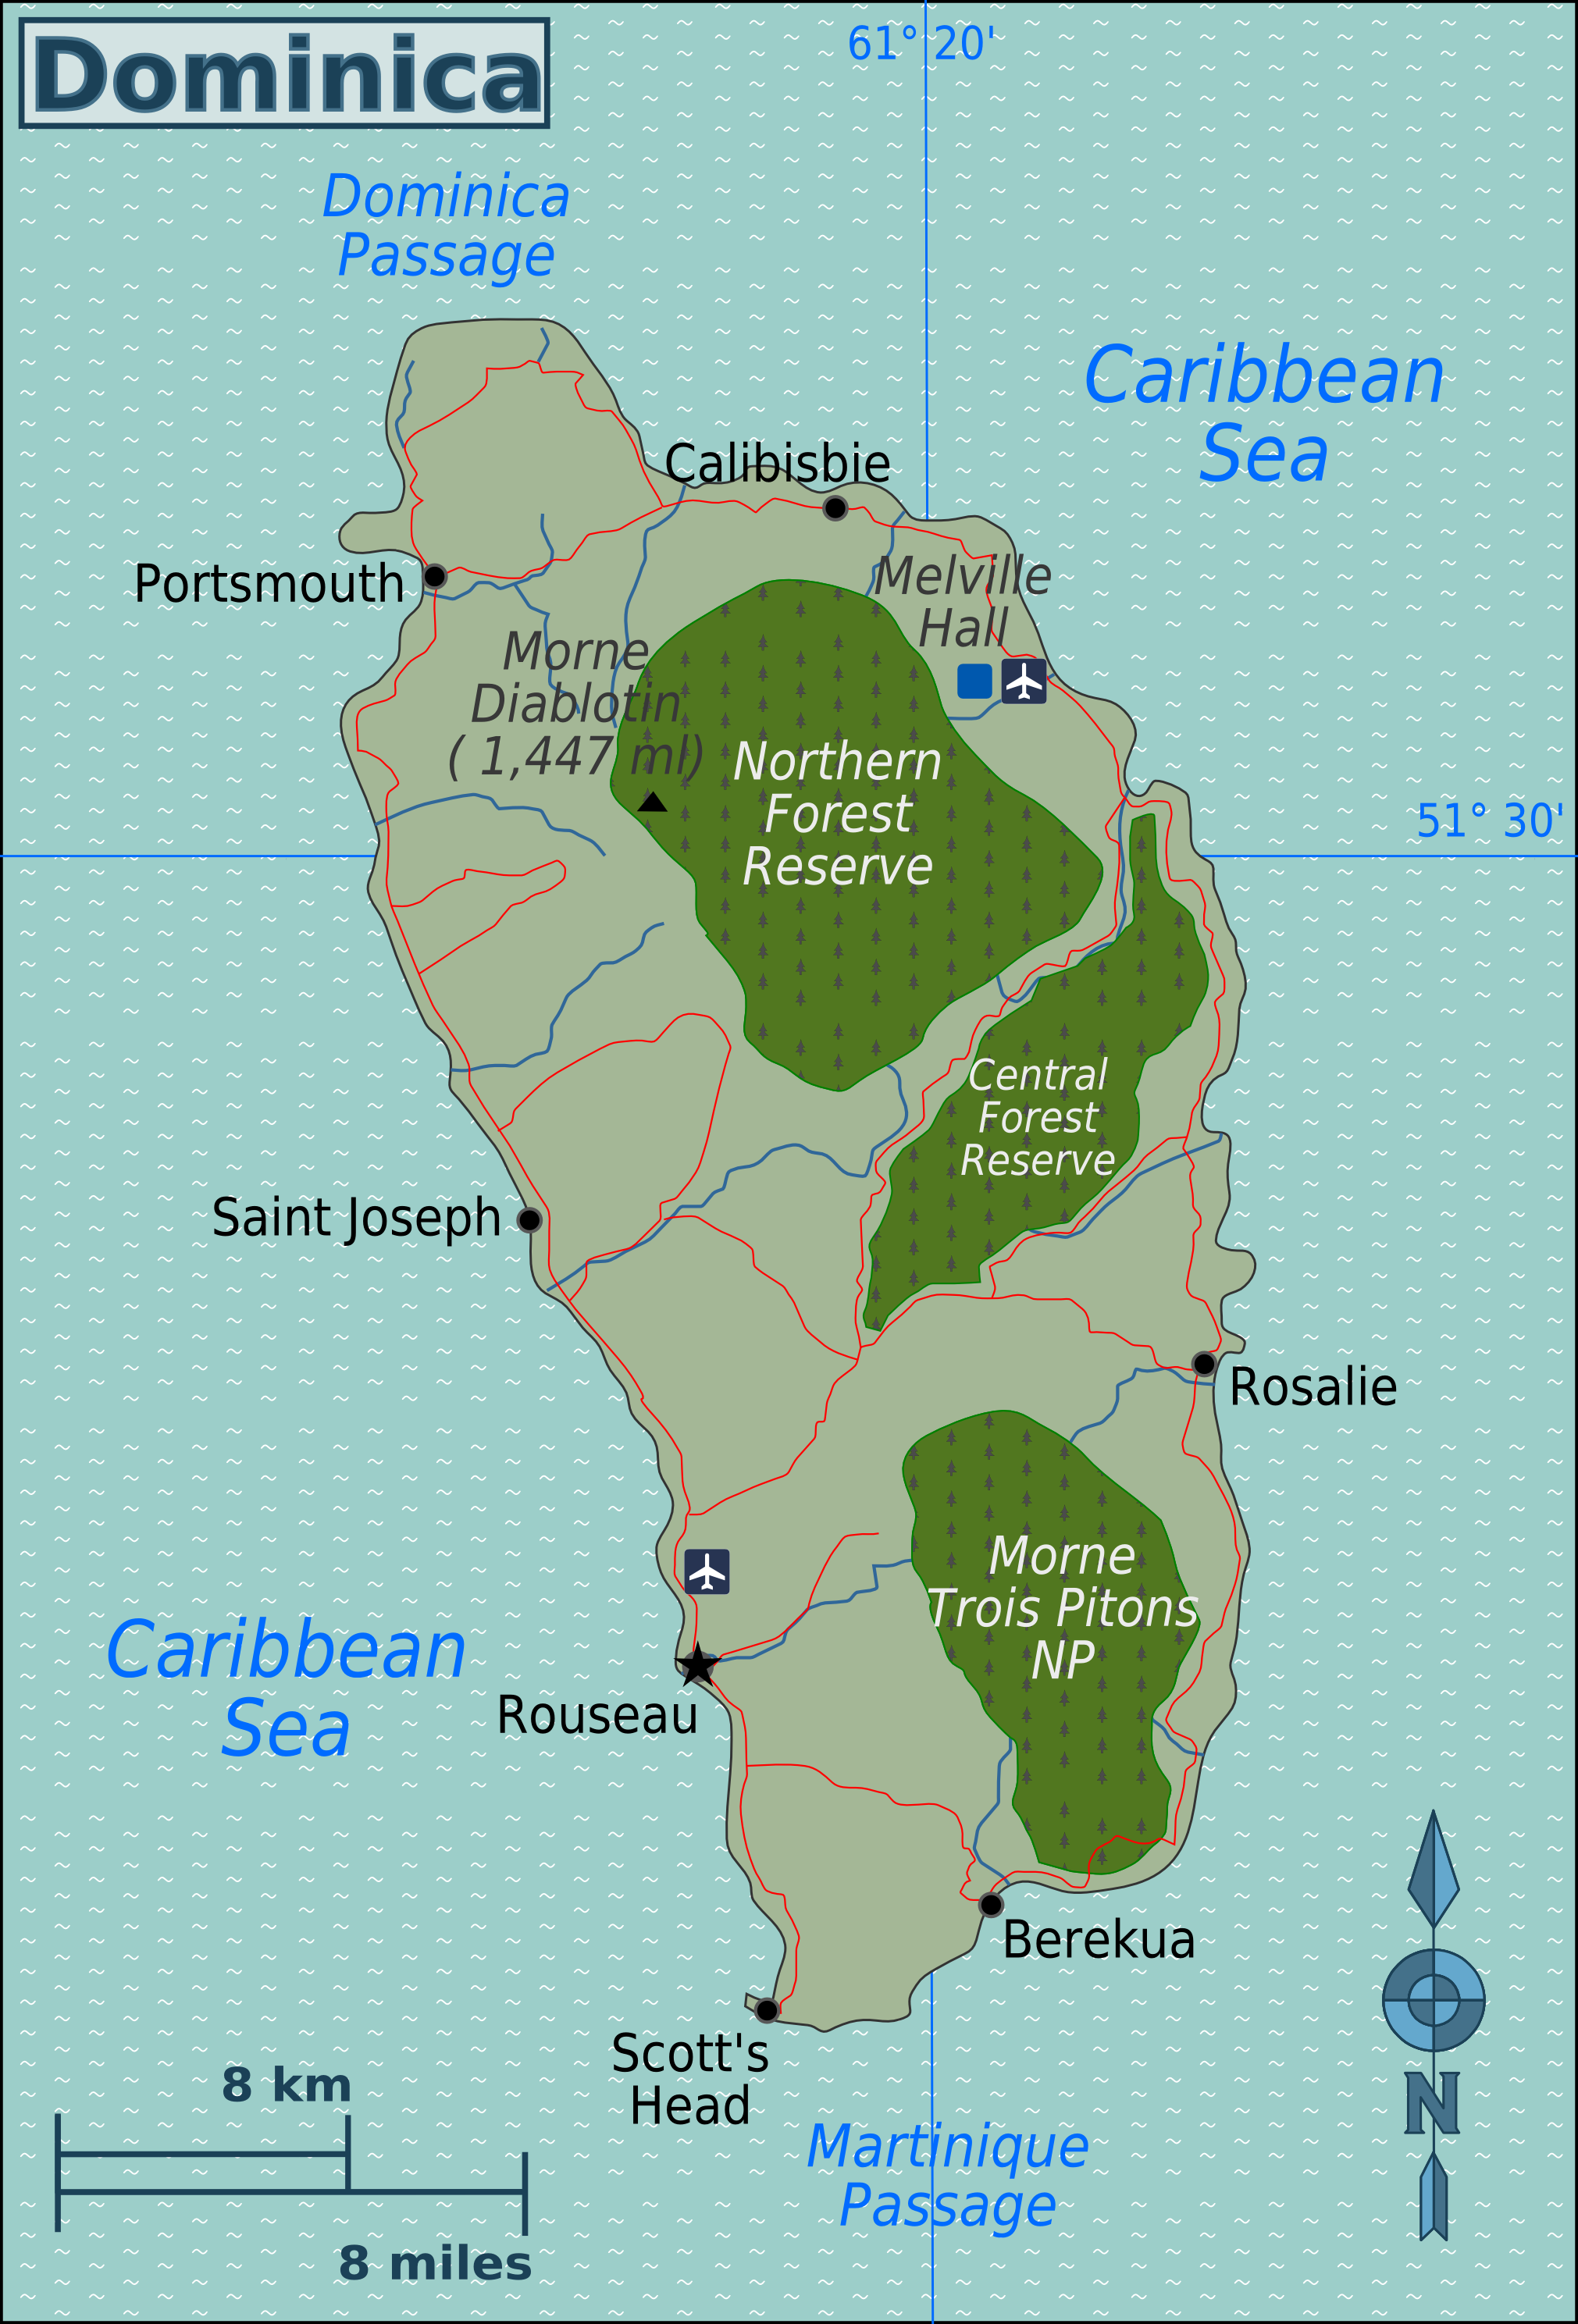 File:Dominica Map.png - Wikimedia Commons on fiji map, el salvador map, st. lucia map, grenada map, martinique map, costa rica map, georgia country map, cayman islands, dominican republic, st thomas map, saint lucia, iceland map, malta map, zimbabwe map, the bahamas, americas map, montserrat map, trinidad and tobago, barbados map, turks and caicos islands, maldives map, antigua and barbuda, caribbean map, st. kitts map, haiti map, jamaica map, dominican republic map,